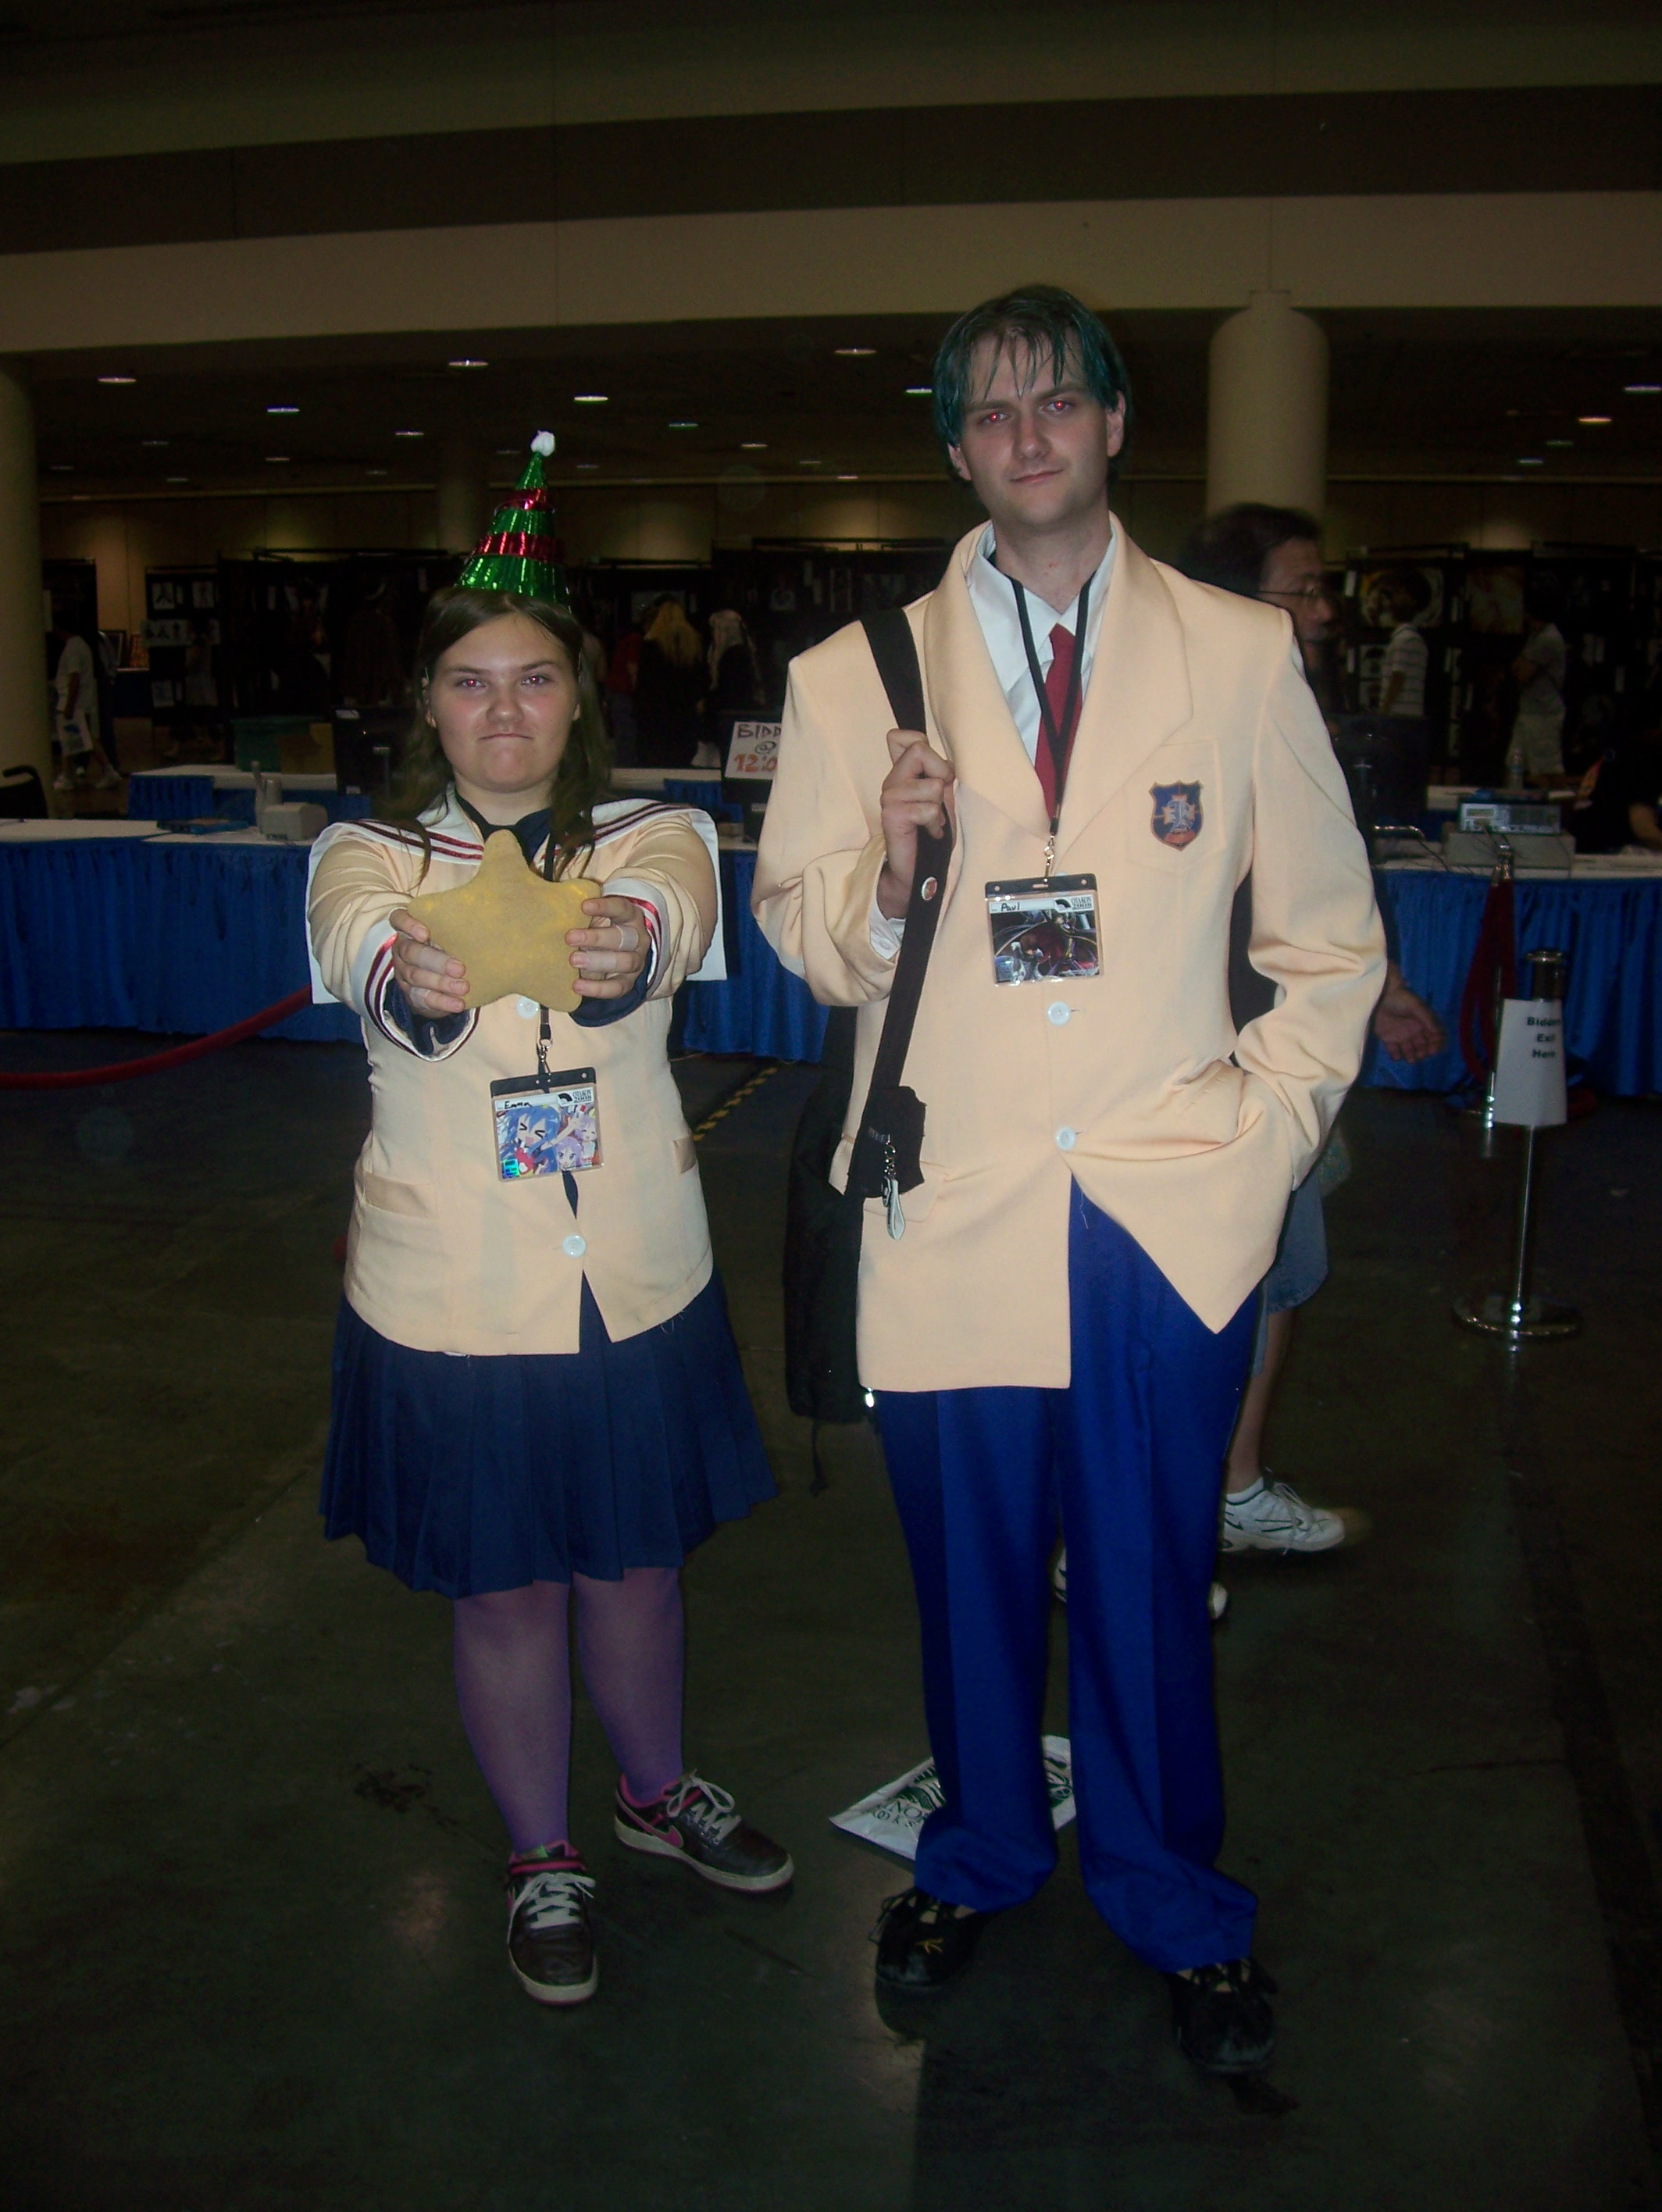 Two Cosplayers are Fuuko and Tomoya from <em>Clannad</em>